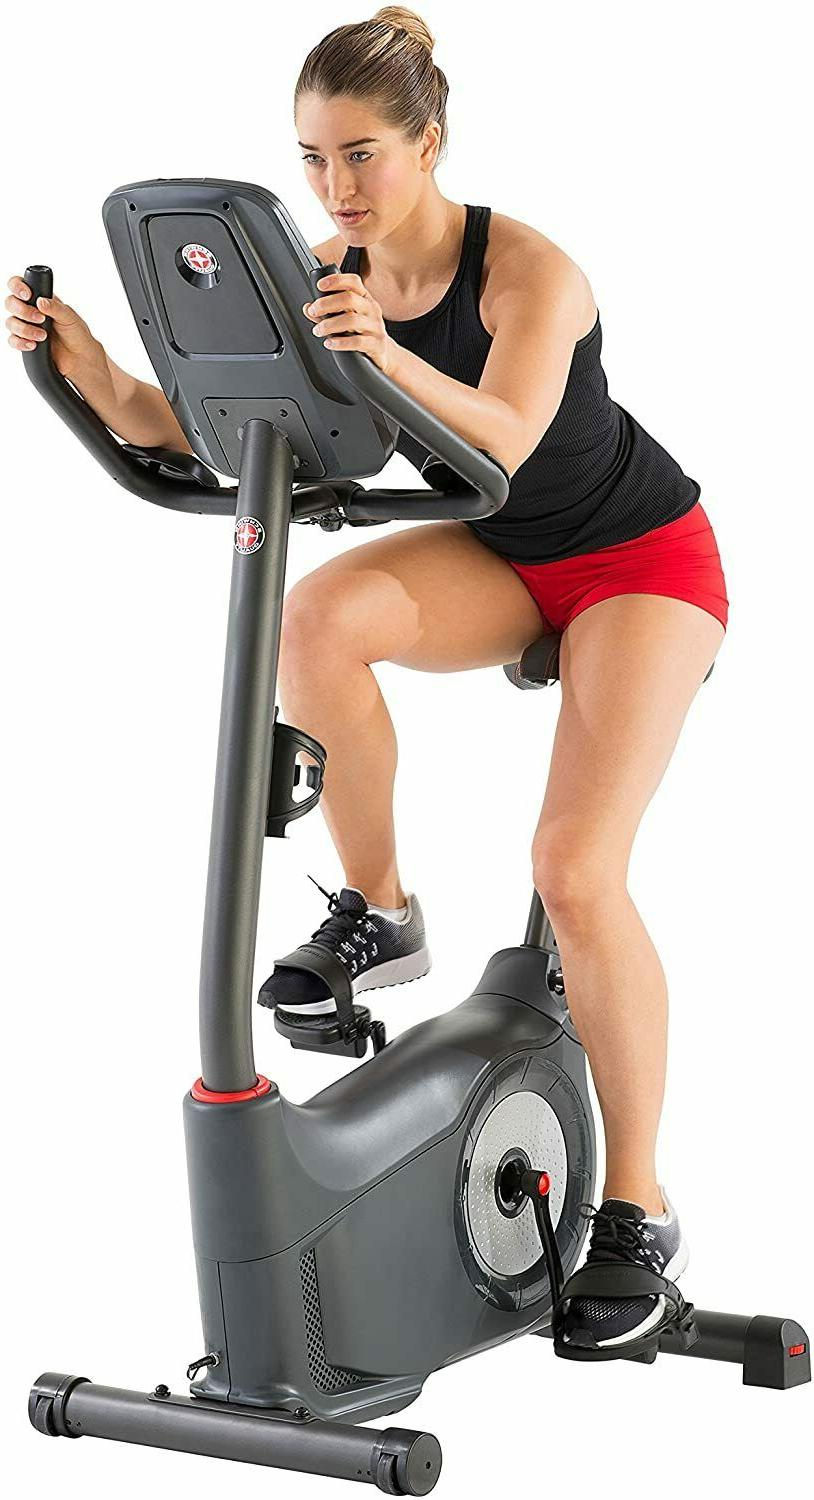 Schwinn Fitness 170 Home Workout Stationary Upright Exercise Manual Guide